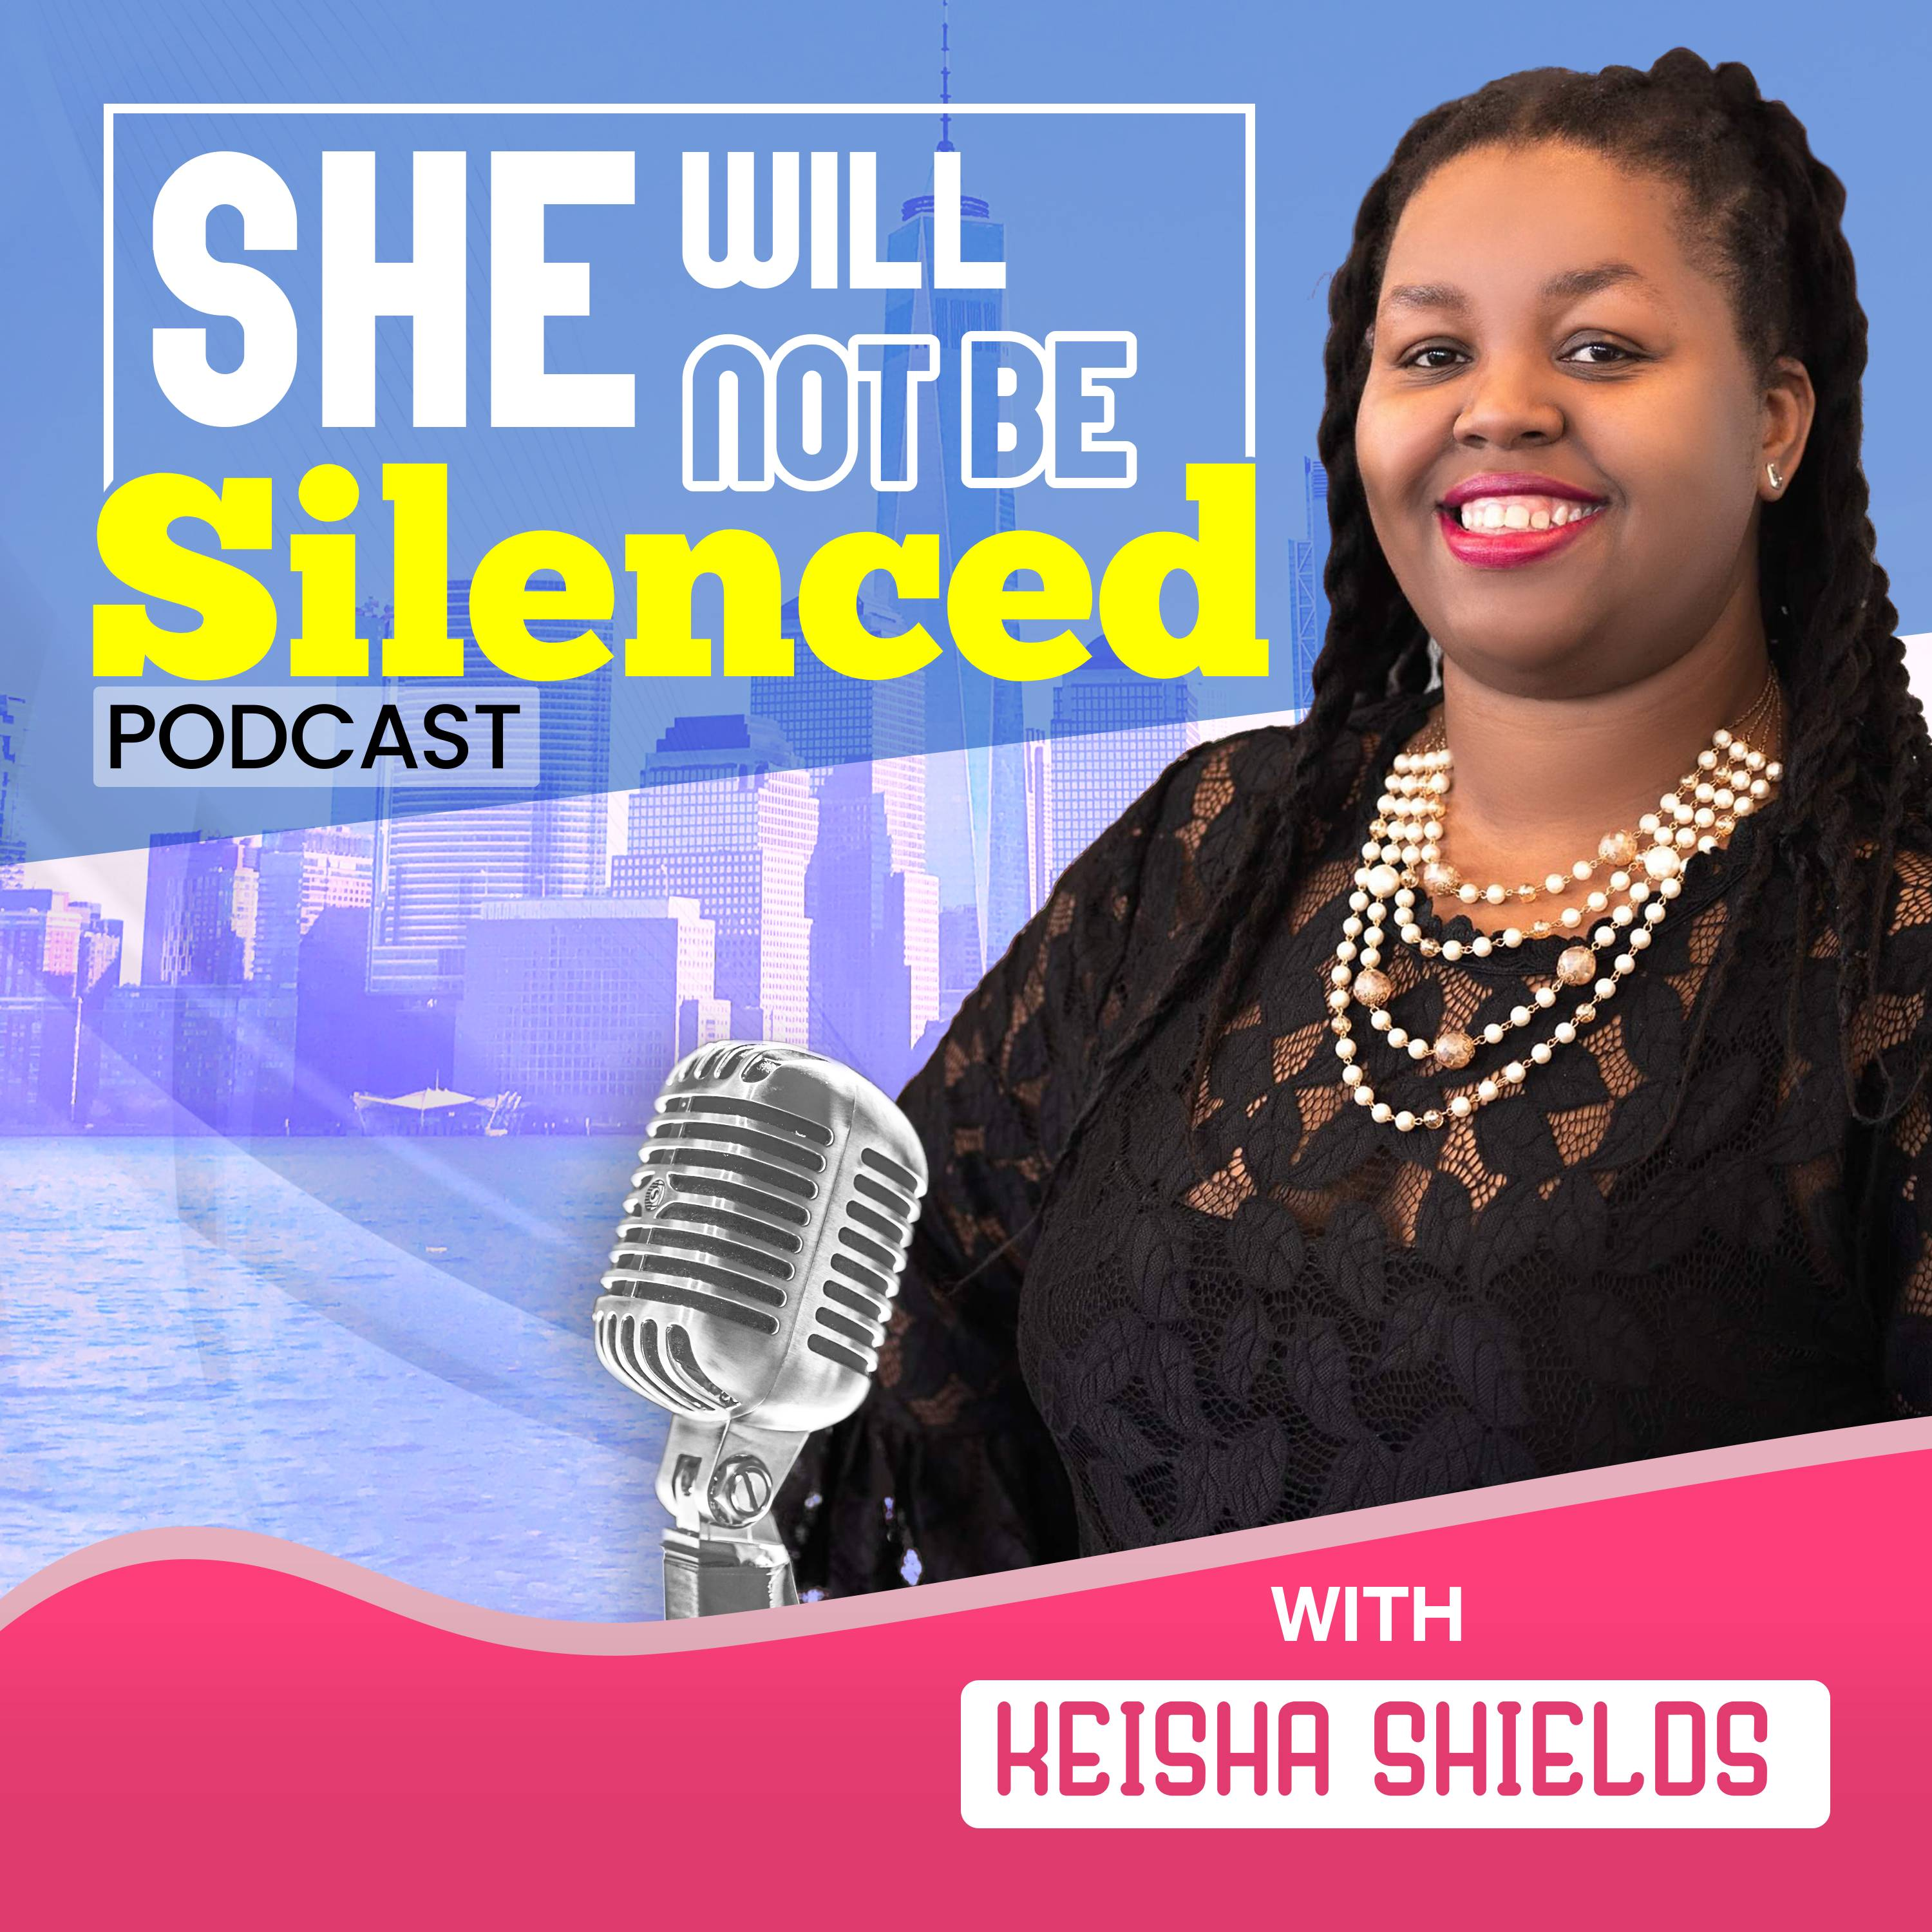 Artwork for podcast She Will Not Be Silenced with Keisha Shields